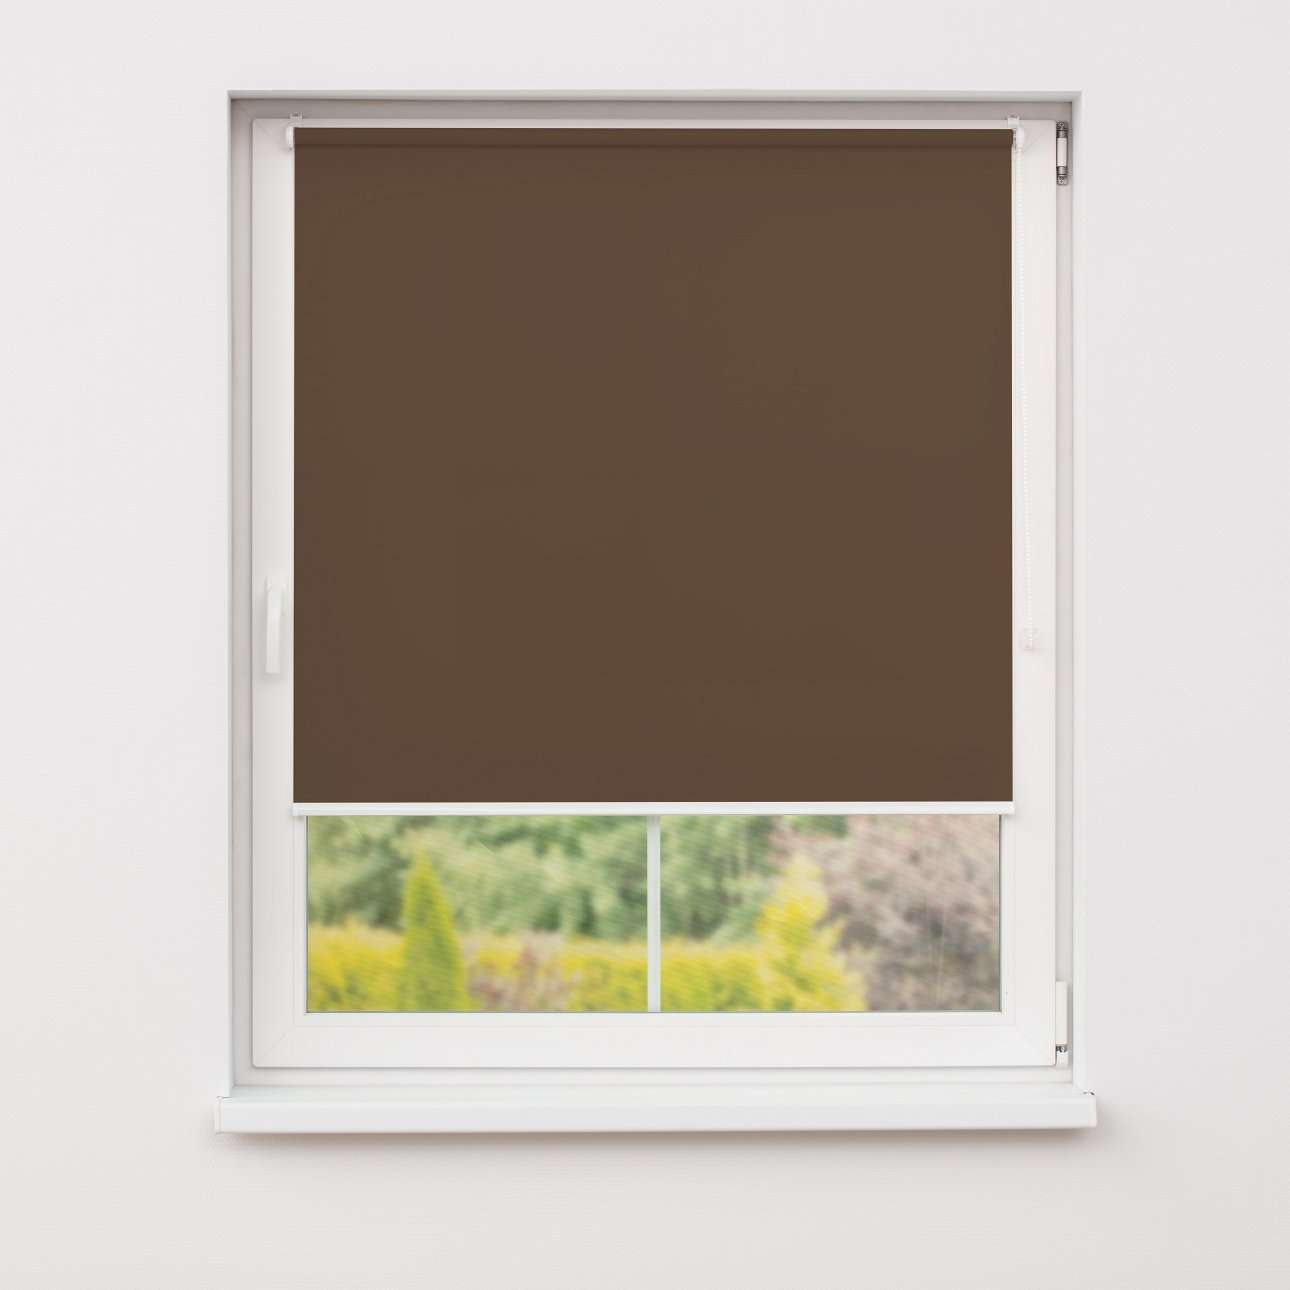 Mini blackout roller blind in collection Roller blind blackout, fabric: 066